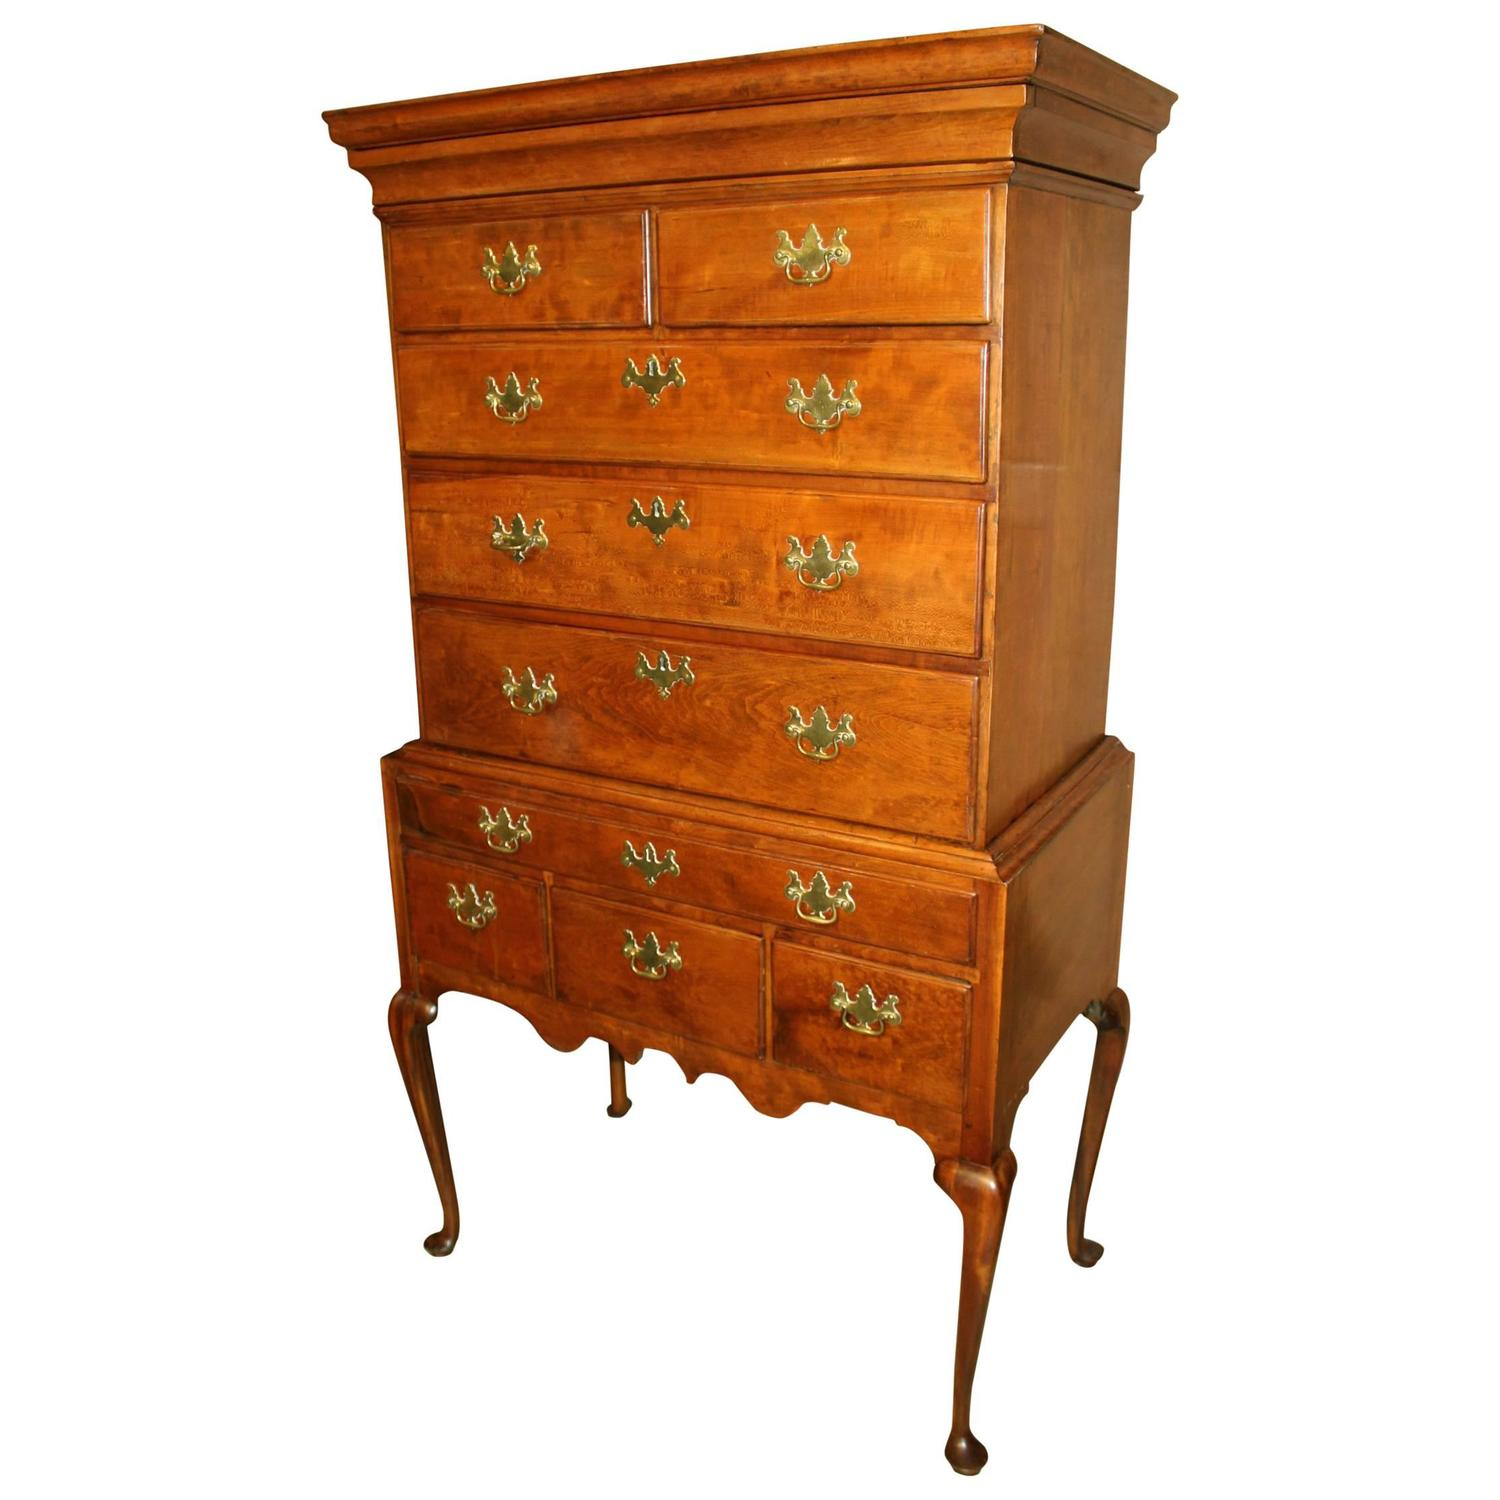 Queen Anne Bedroom Furniture For Queen Anne Furniture 461 For Sale At 1stdibs